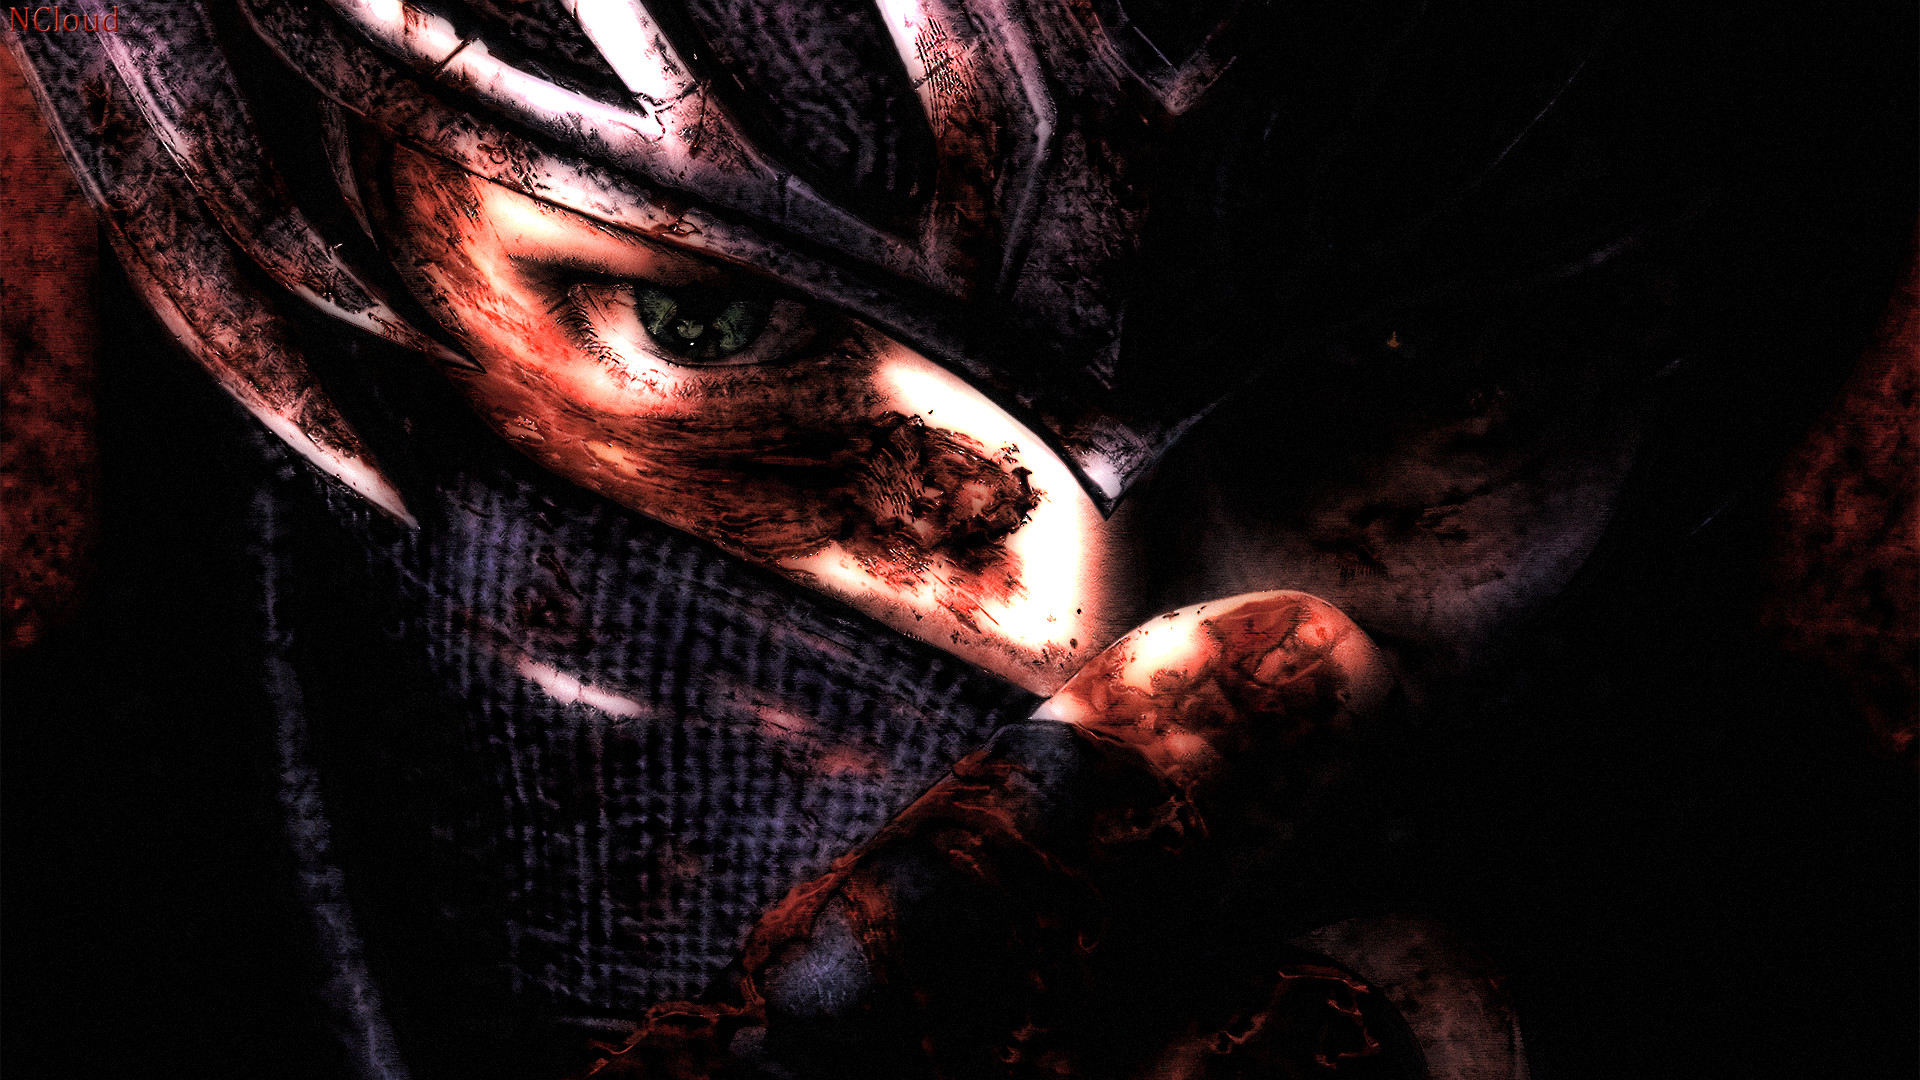 ninja gaiden wallpapers for desktop - photo #22